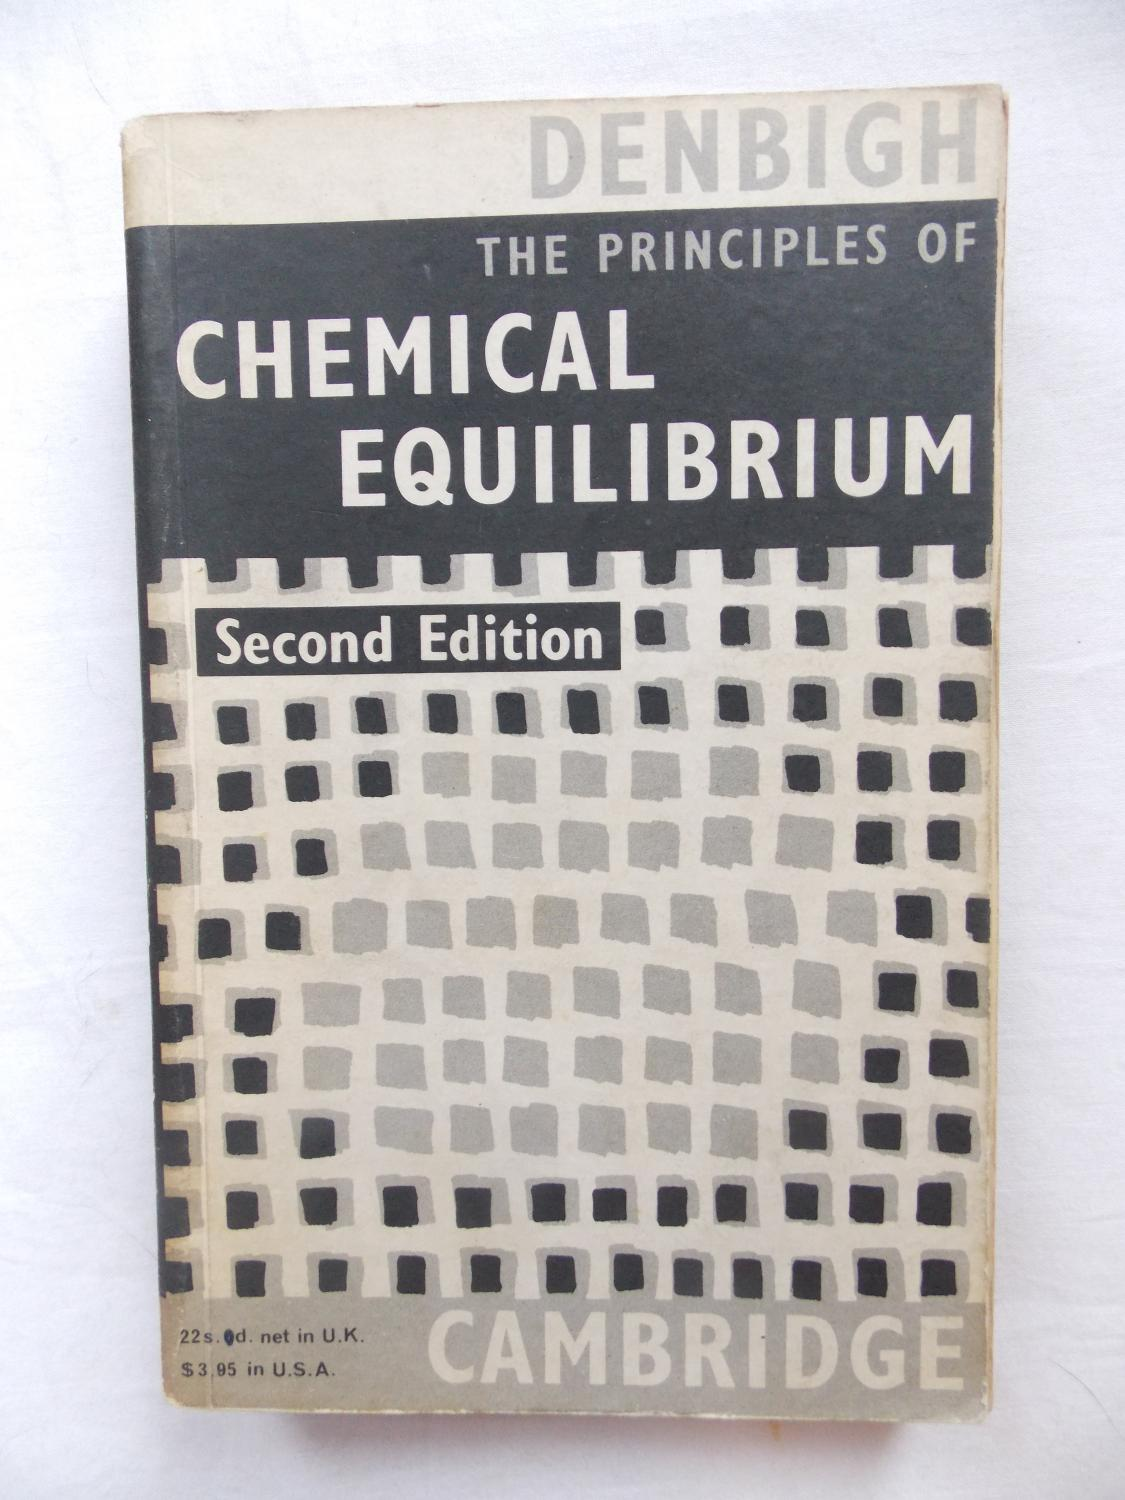 The Principles of Chemical Equilibrium with